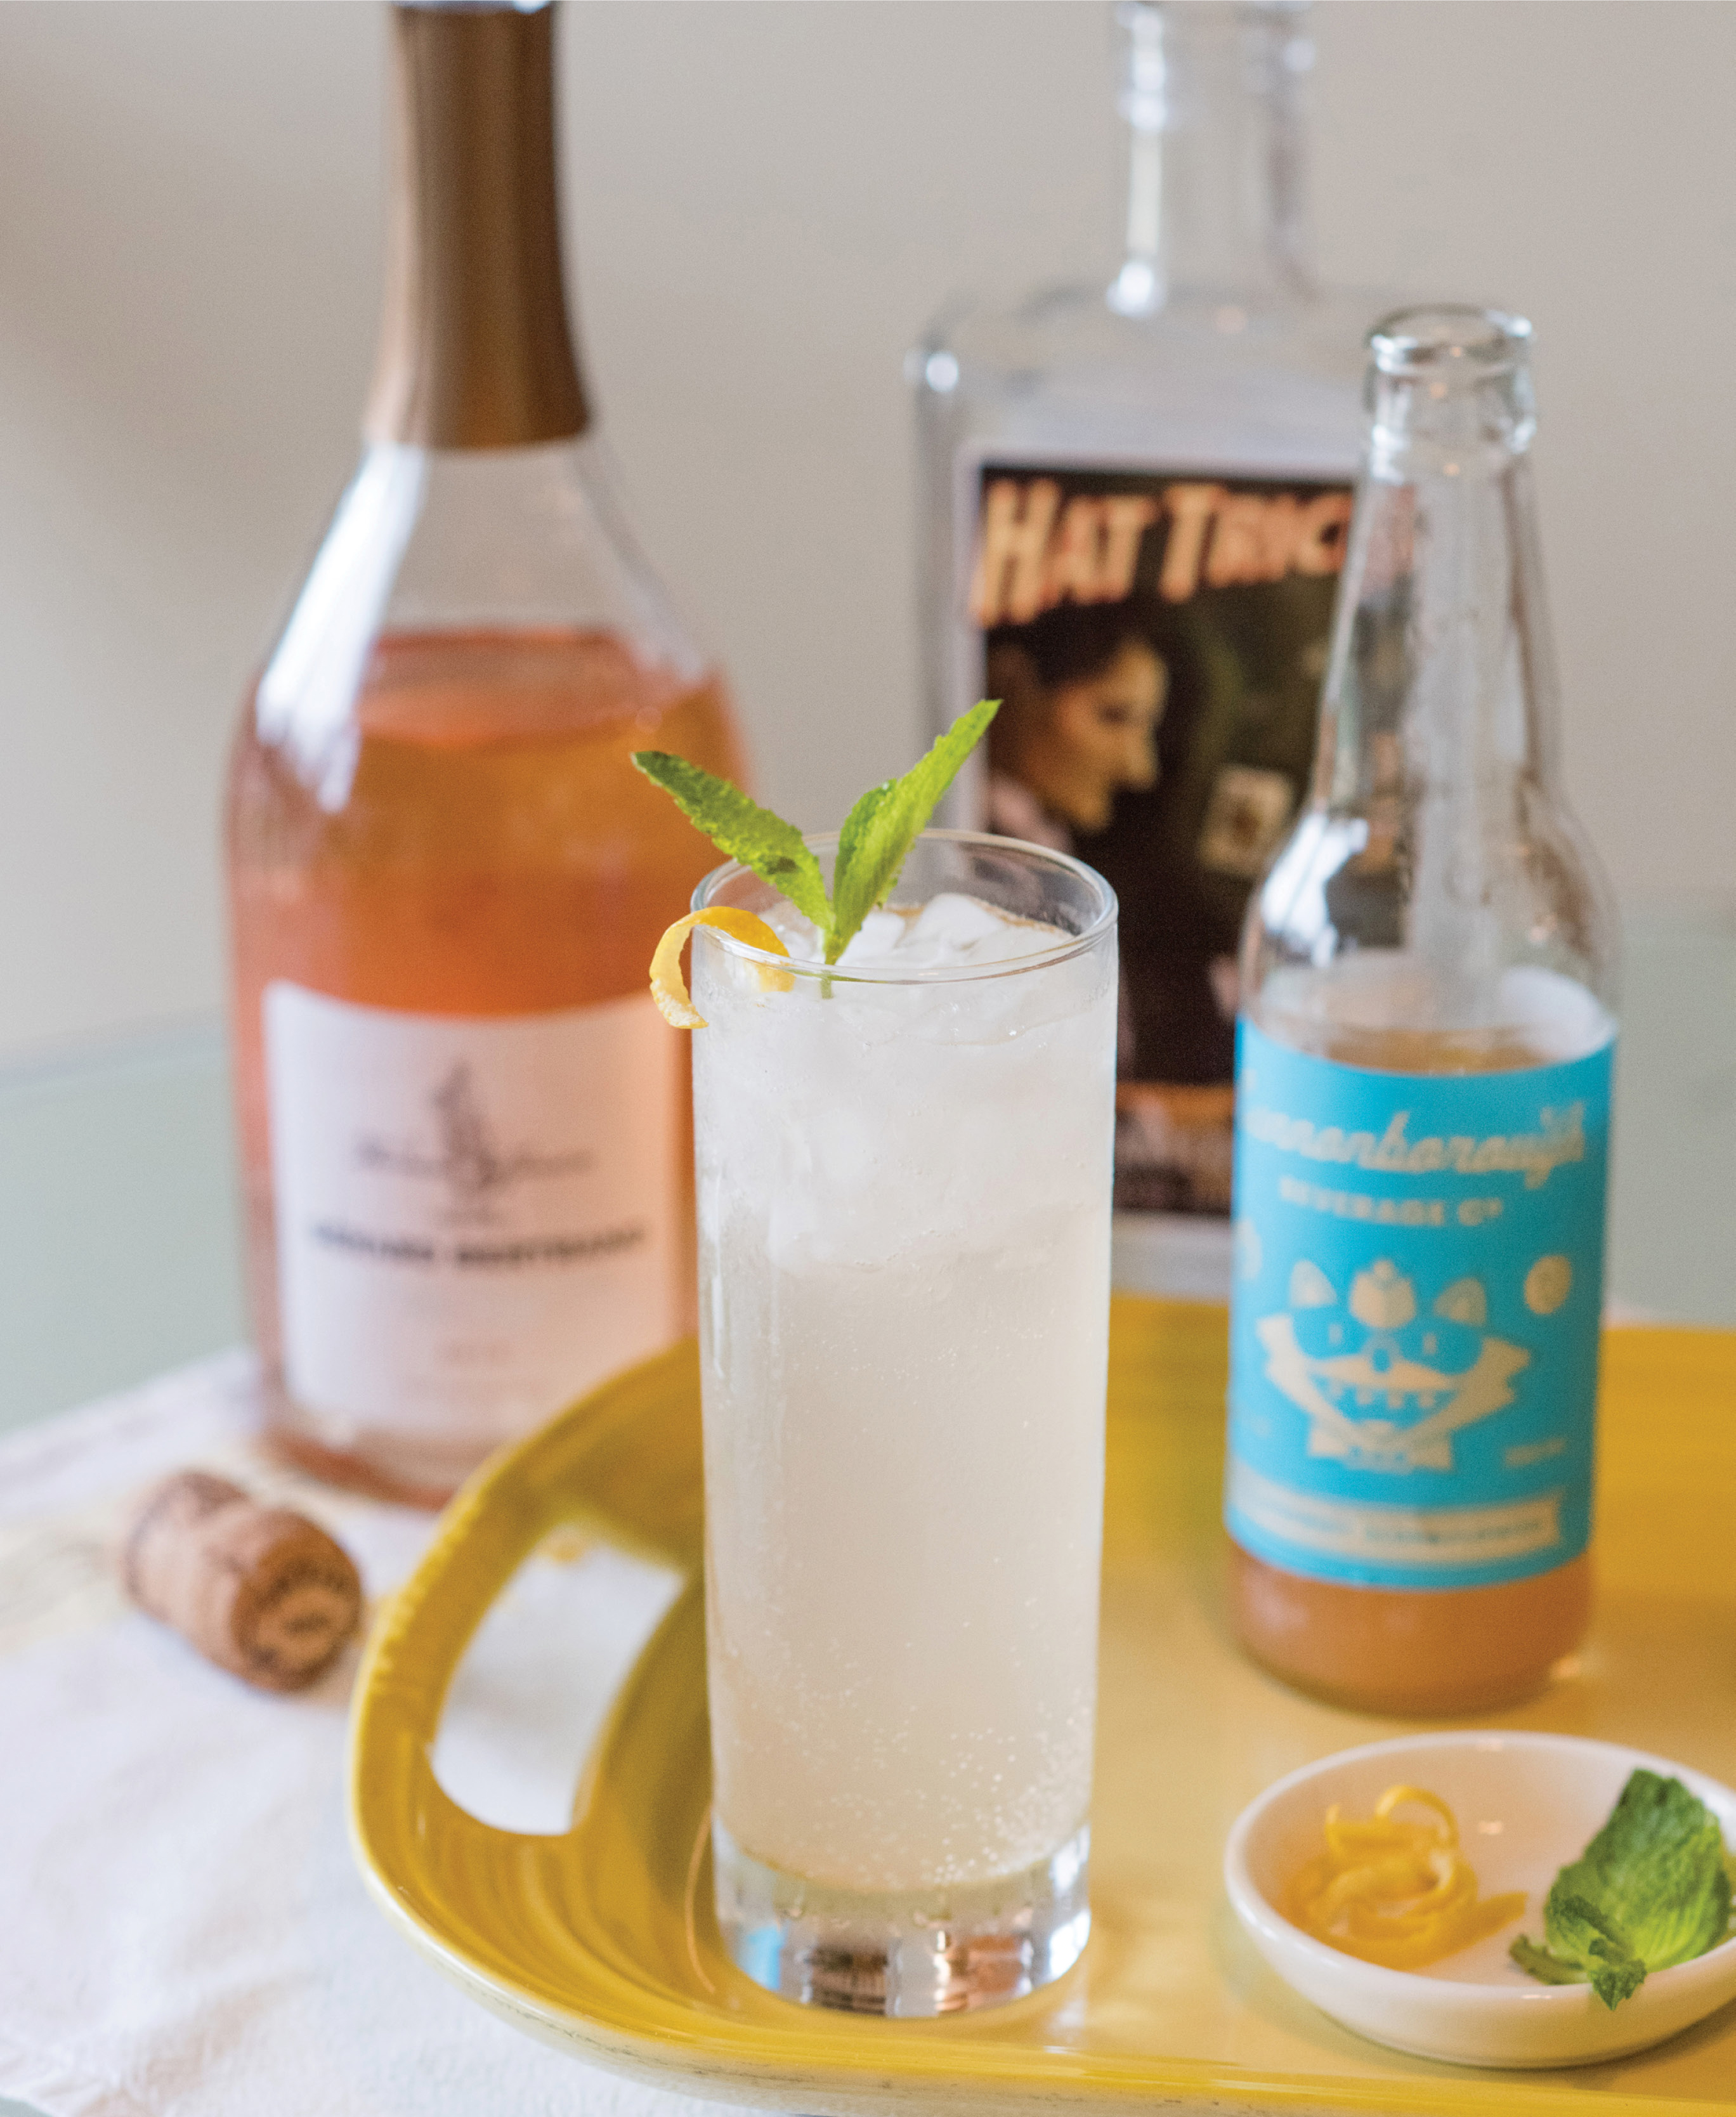 Floral gin, grapefruit soda, and sparkling rosé combine in this bright, refreshing sip. Pair it with pastry chef Andrea Upchurch's Charleston-style quiche and lemon cake with berries, and you've got a supper fit for an easy afternoon.